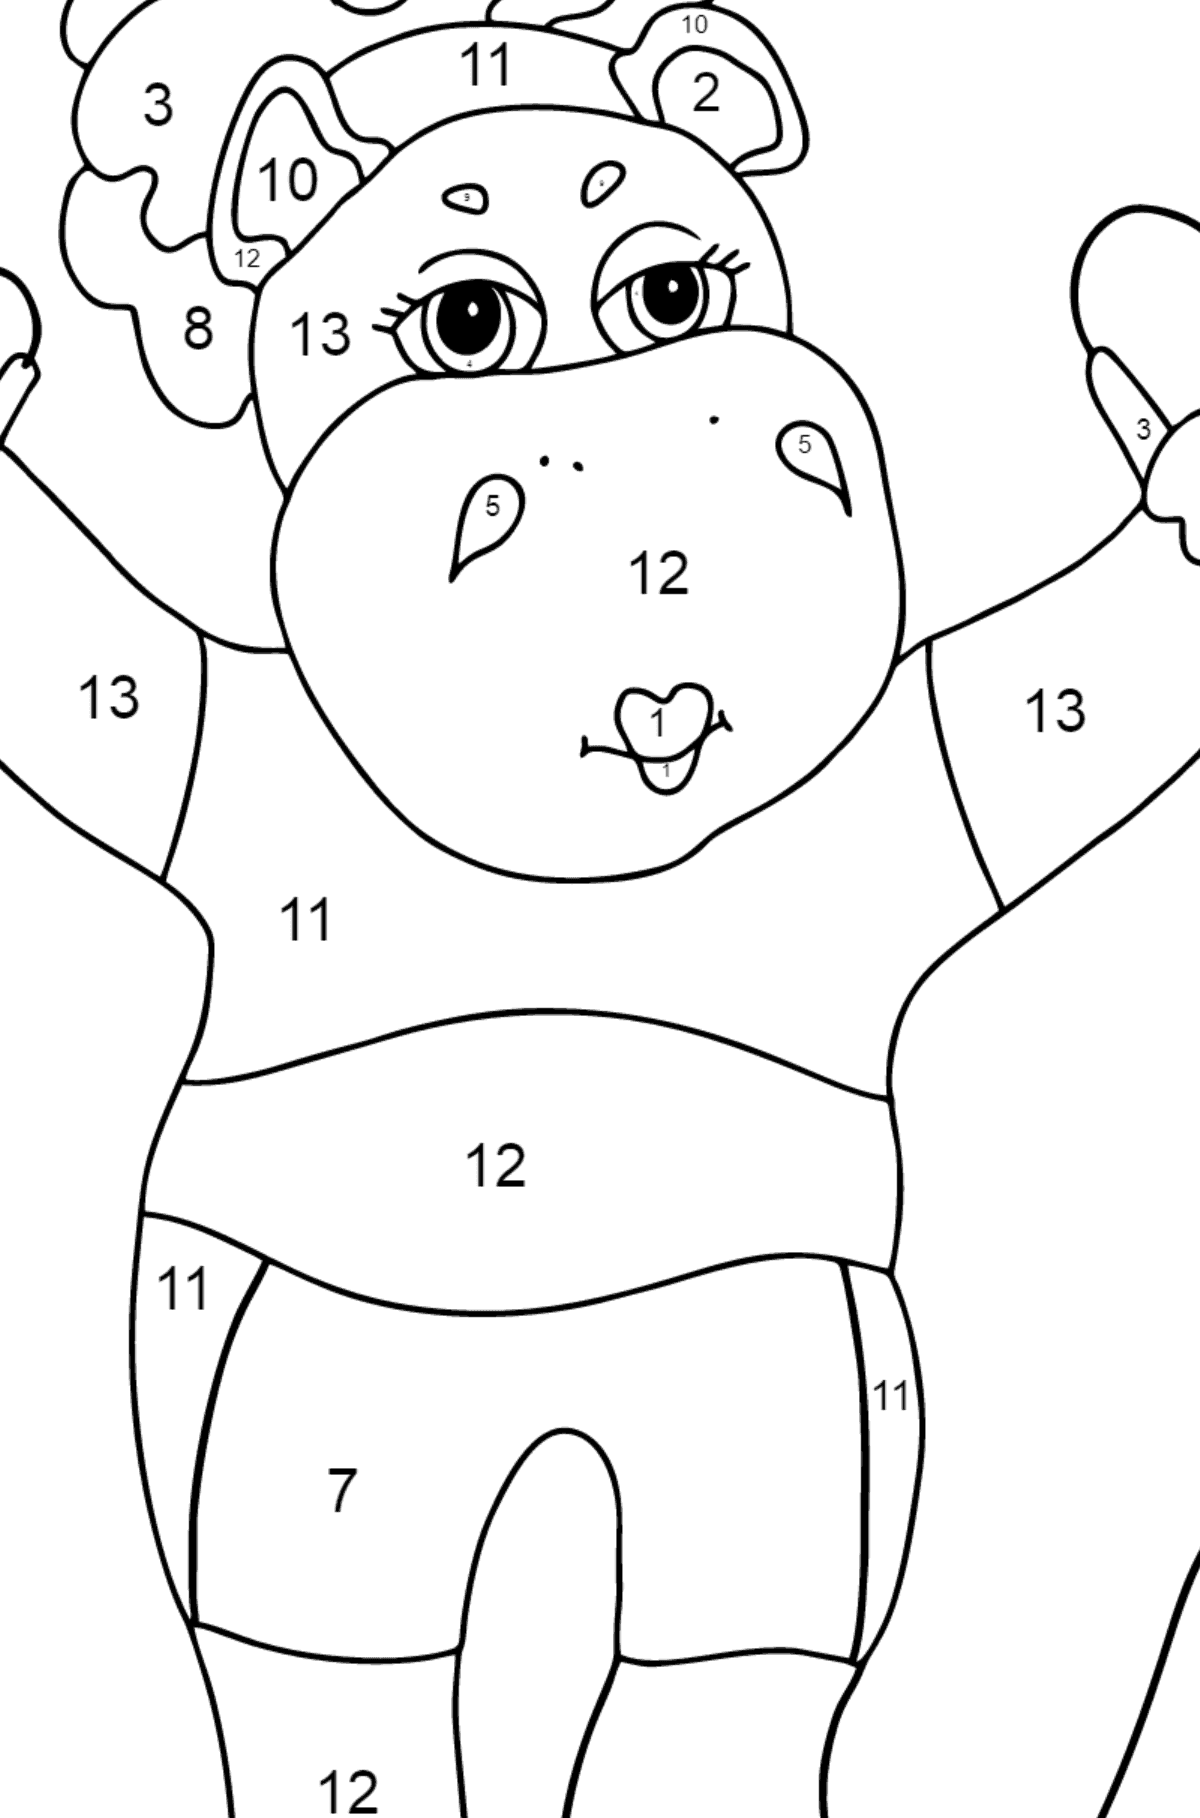 Coloring Page - A Hippo is Jumping on a Rope for Children  - Color by Number